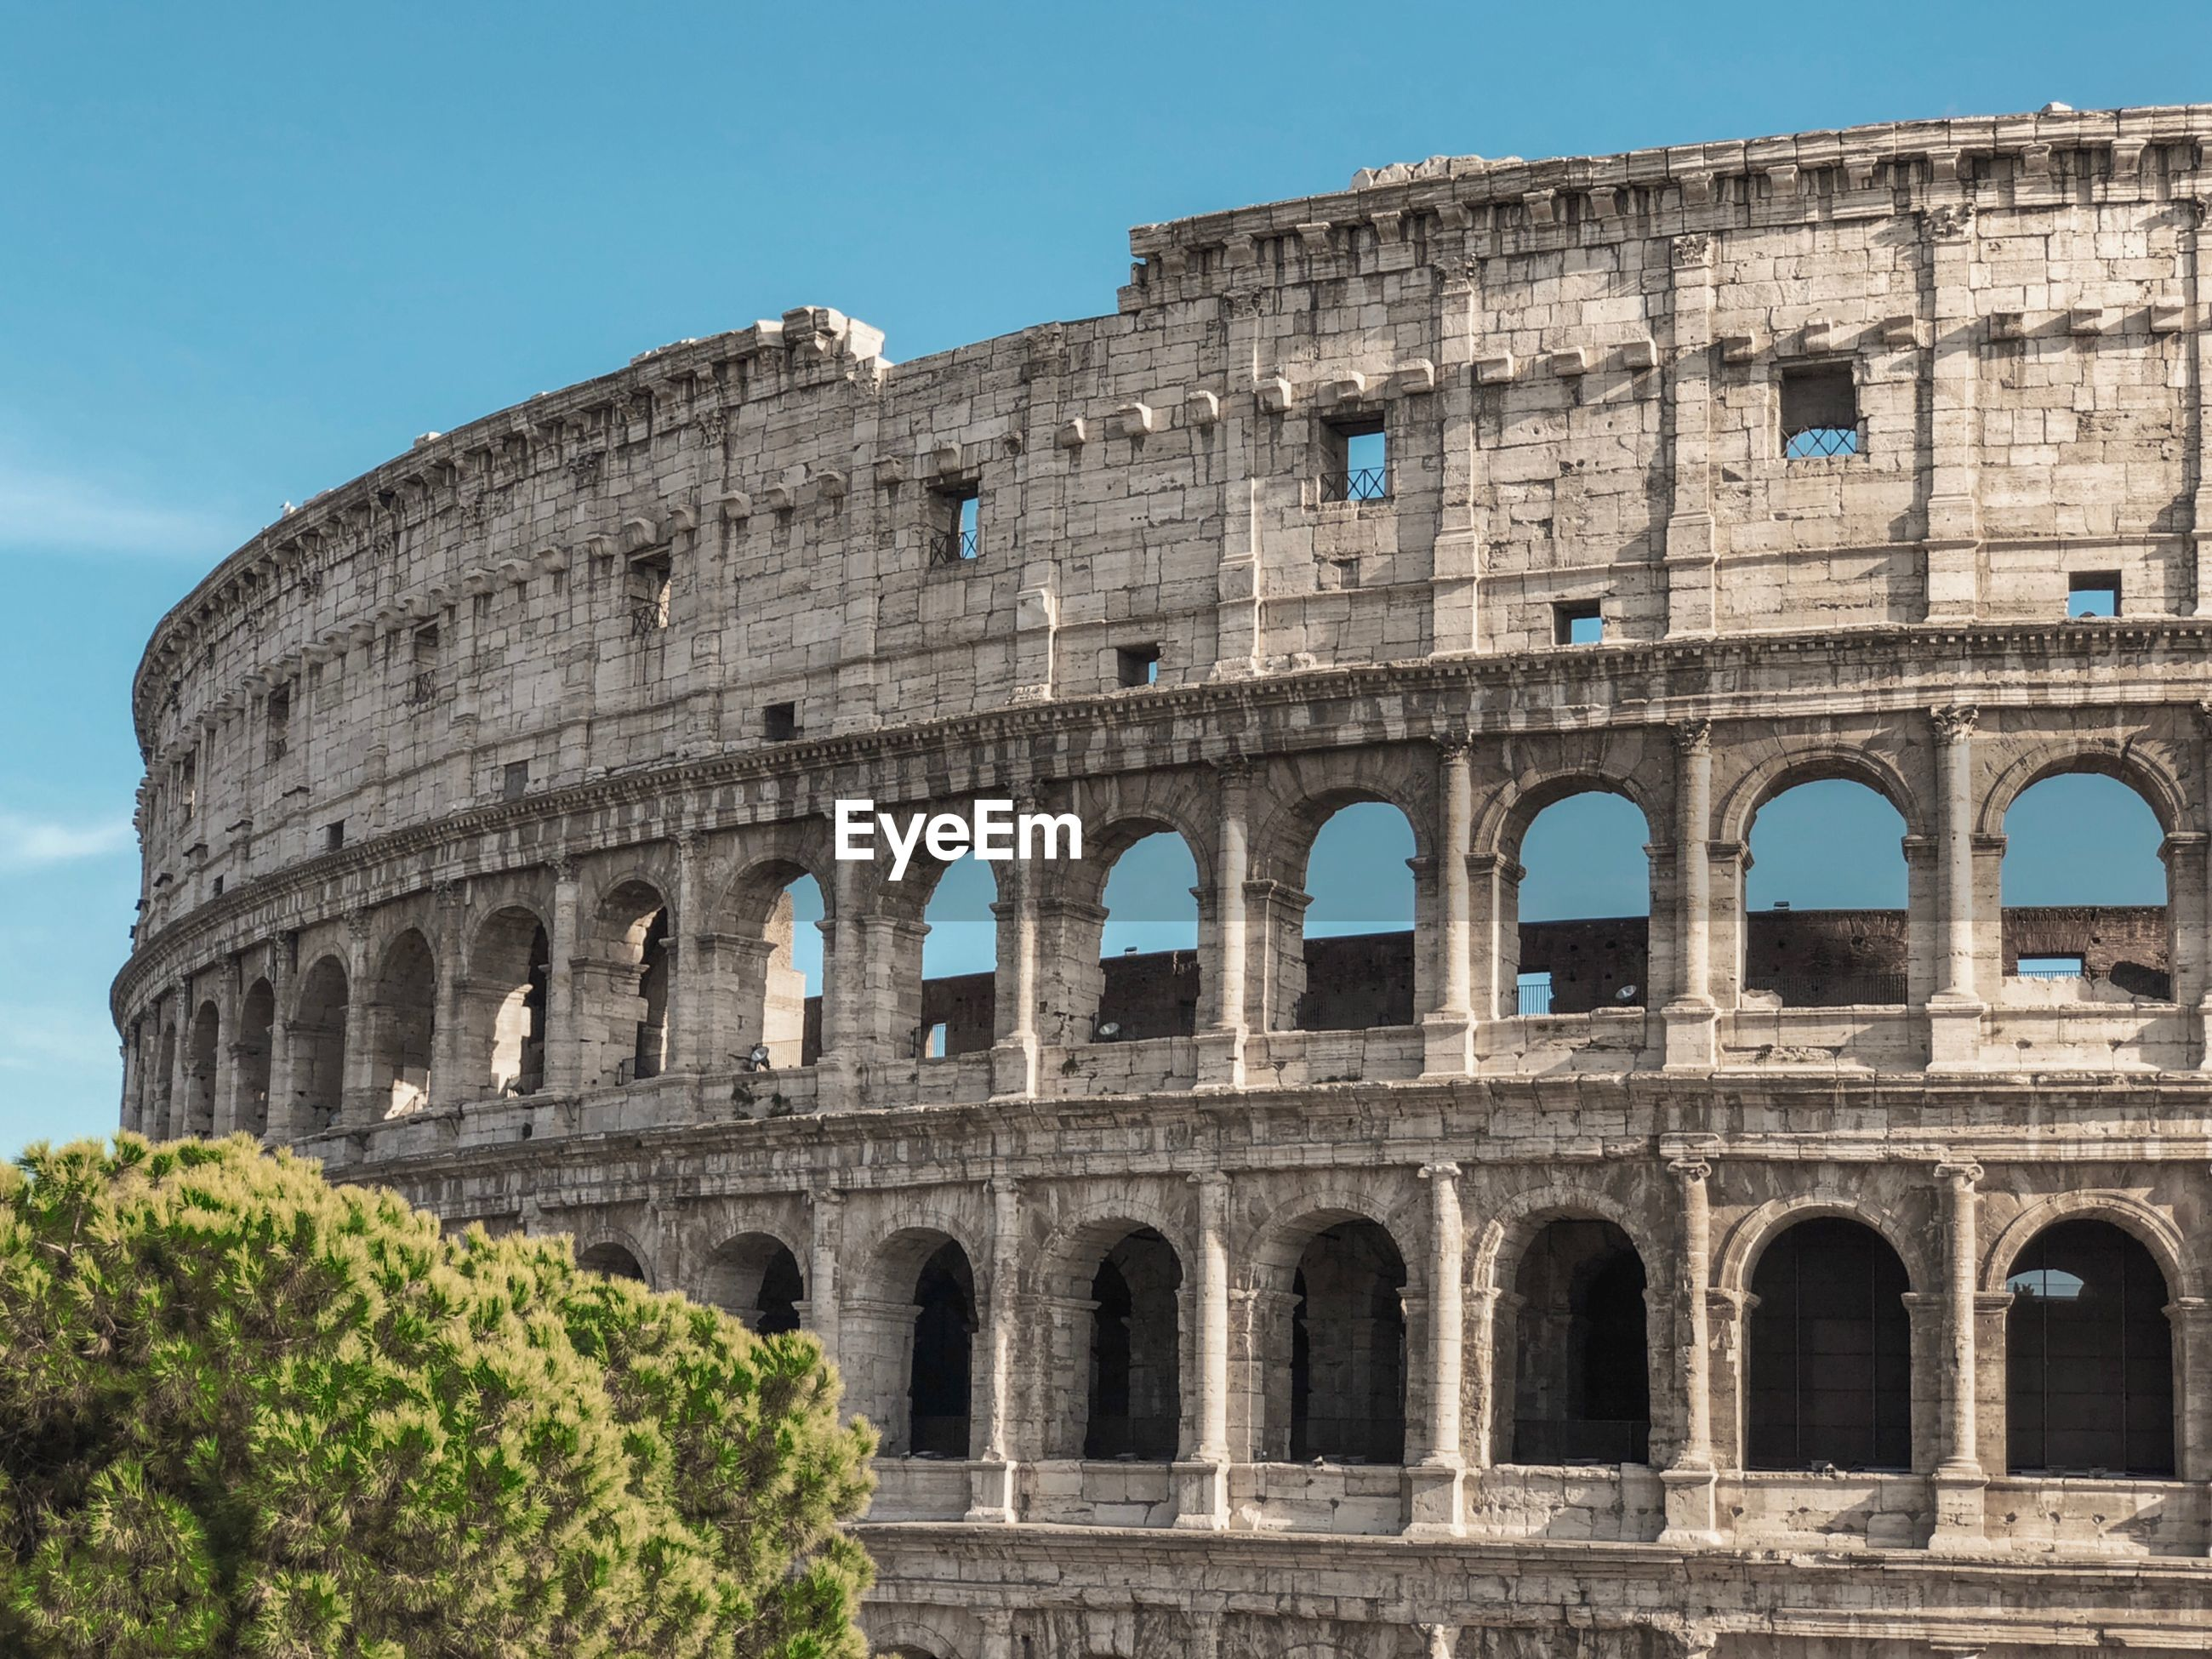 Coliseum against sky during sunny day